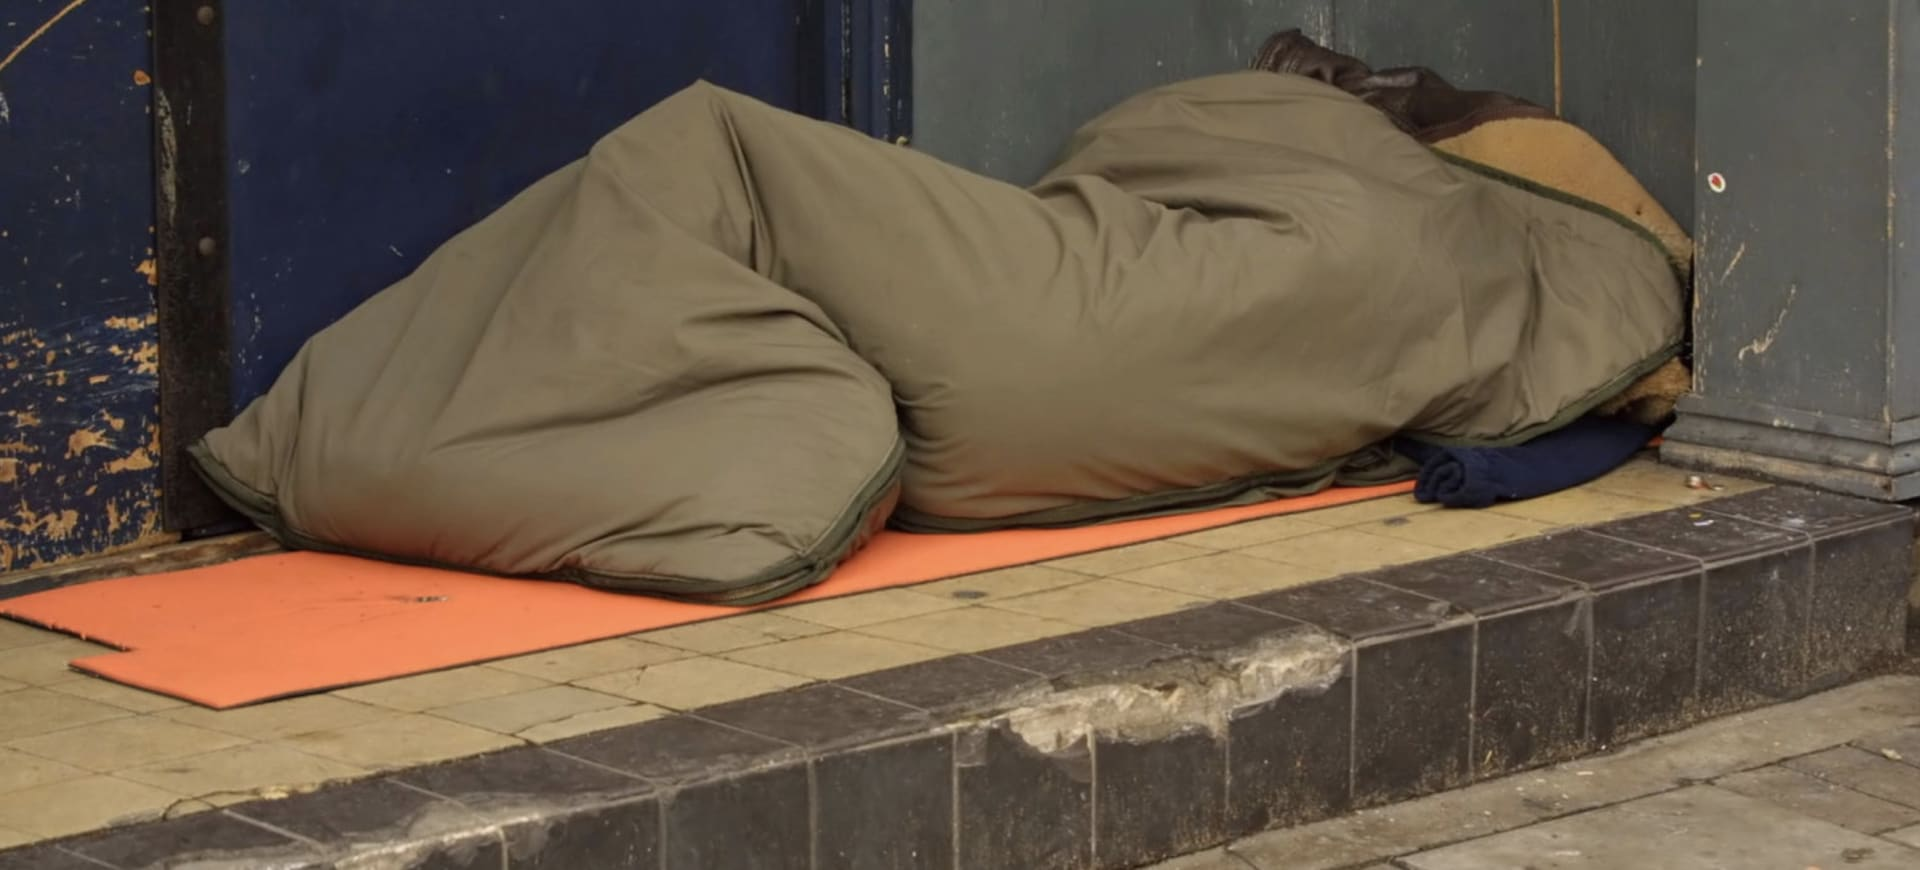 "London's CHAIN rough sleeping figures show ""a crisis on our streets"""